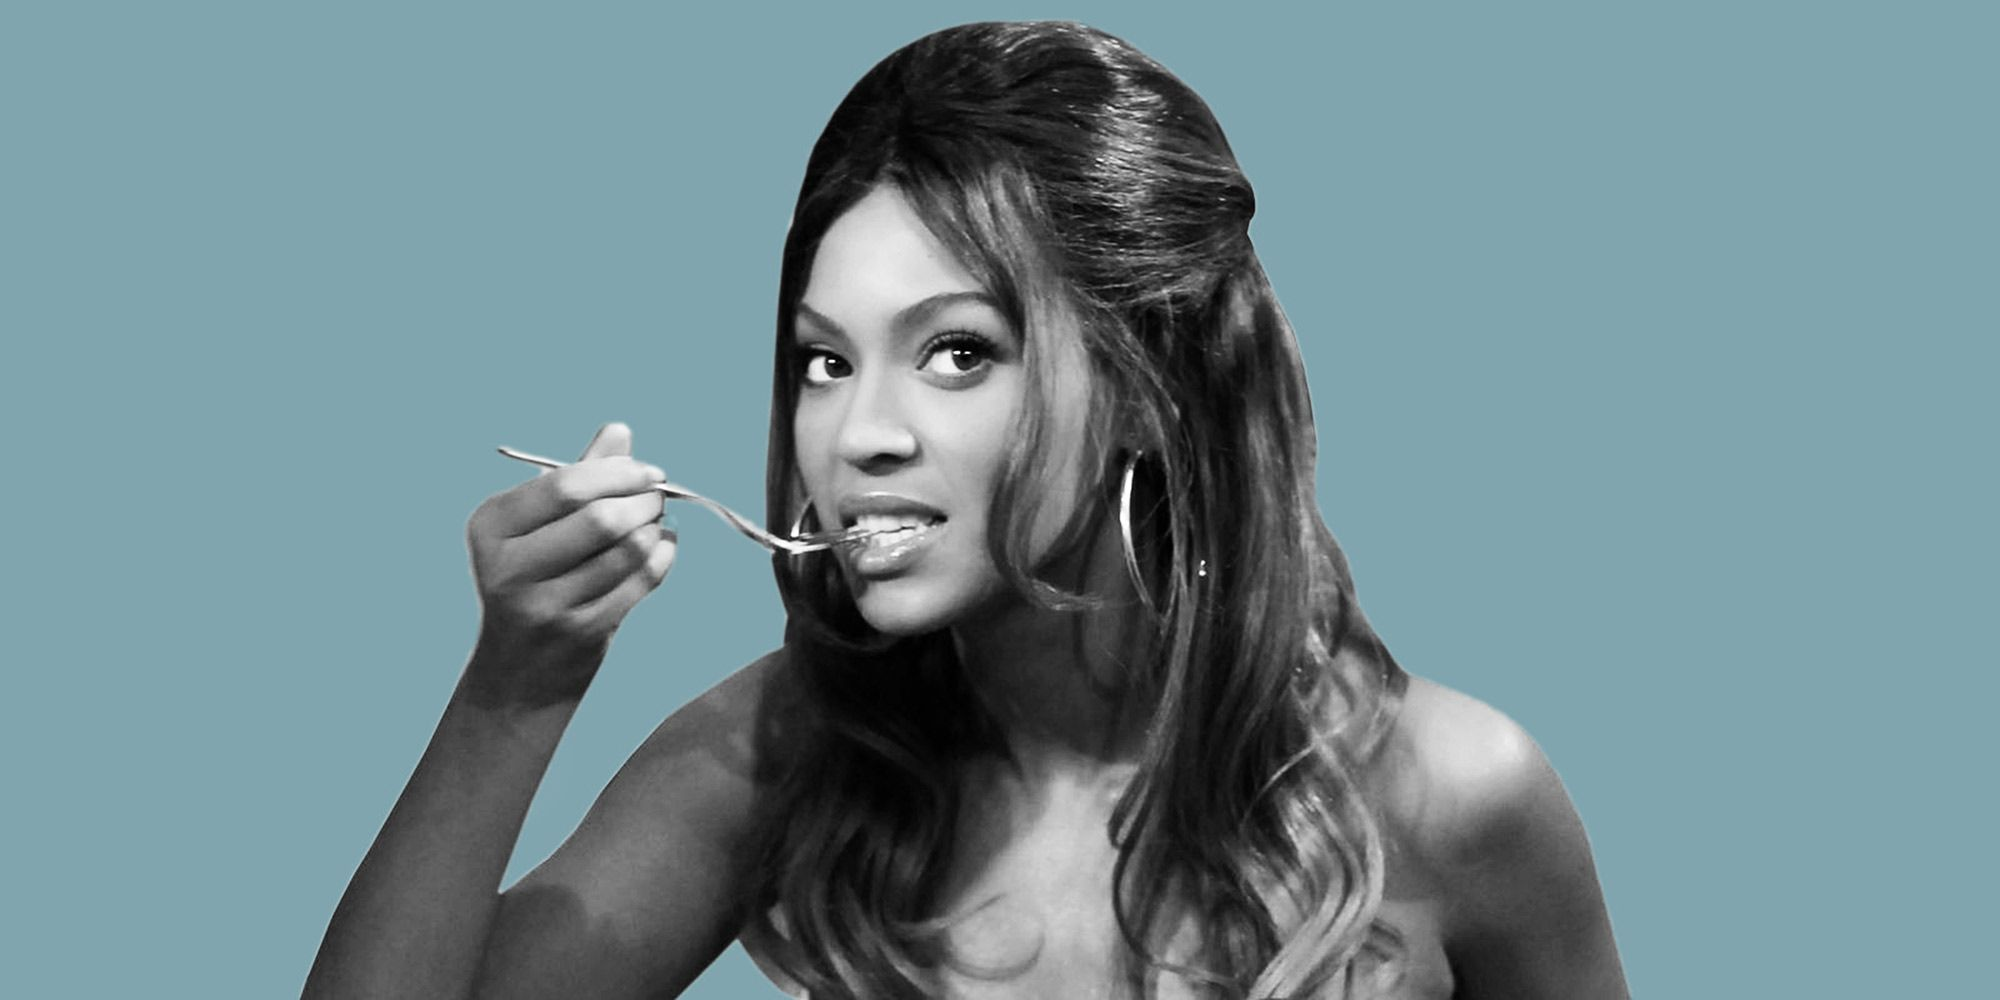 Watch I tried out Beyoncés diet for one week and it was really doable video